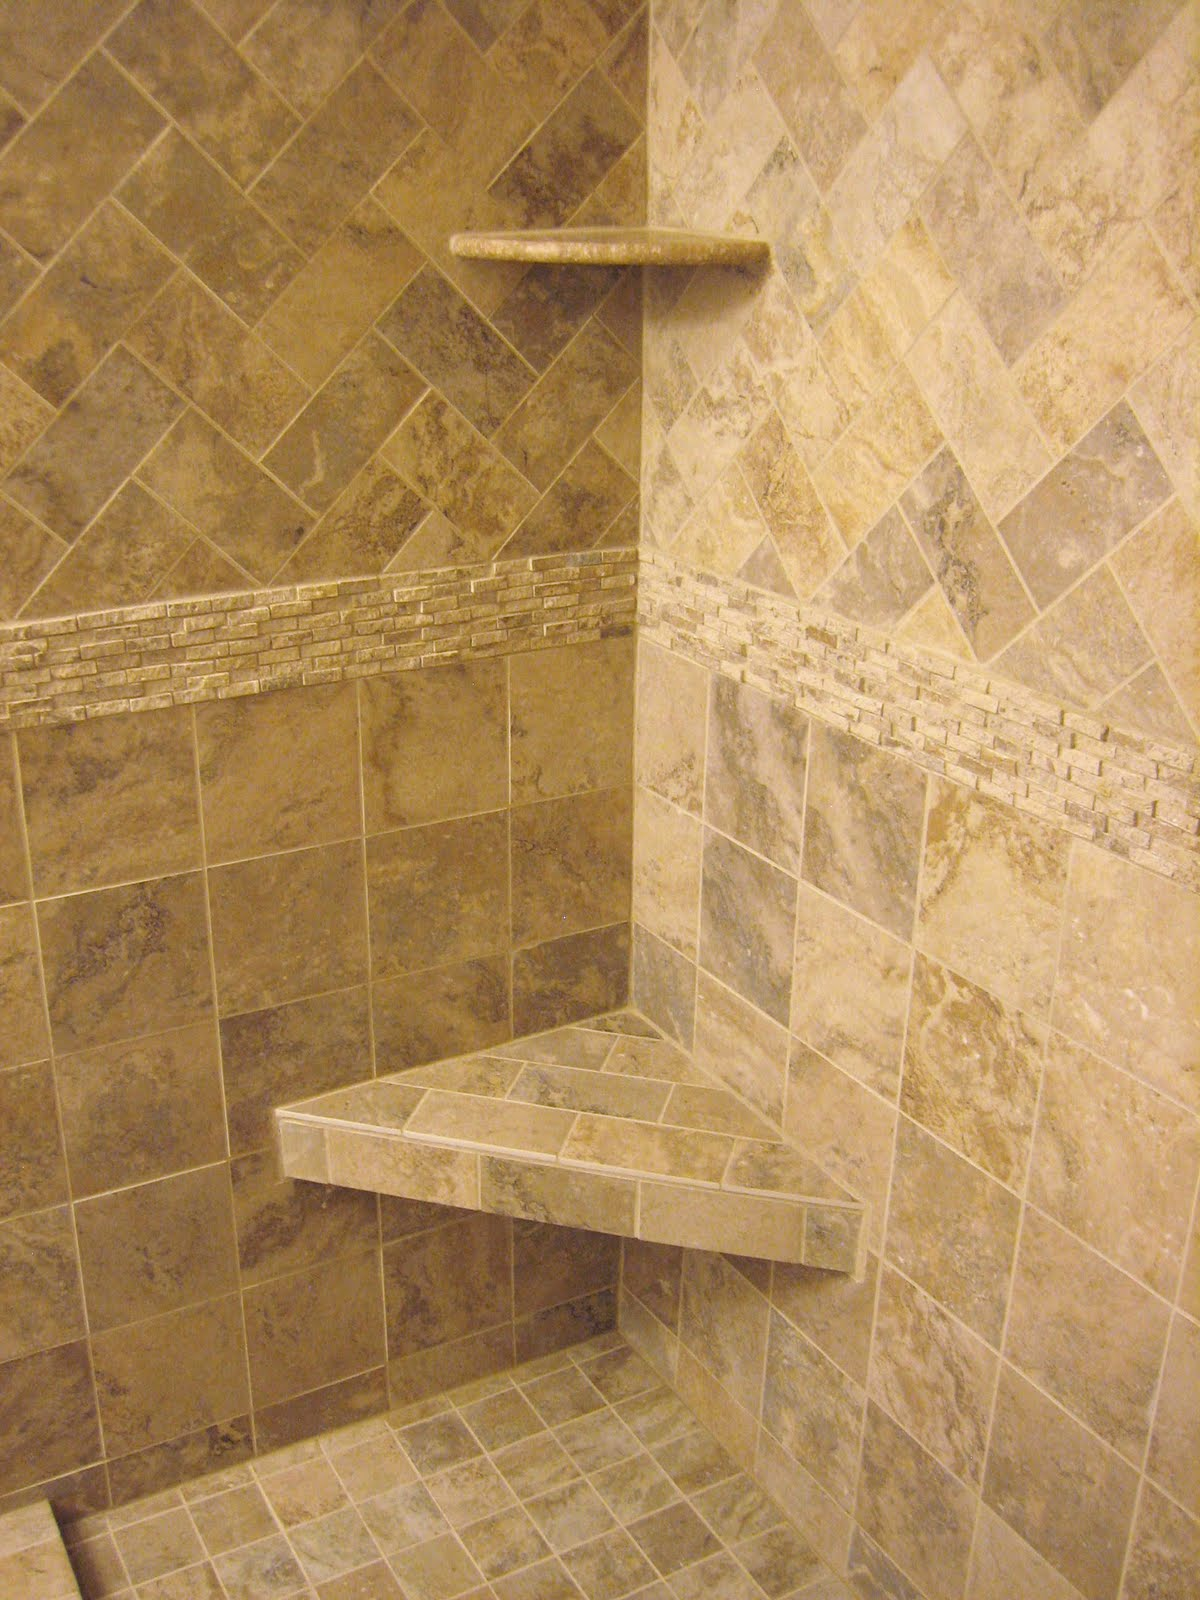 Bathroom tiles designs for small spaces - Winter Showroom Blog Luxury Master Bath Remodel Athena Stone